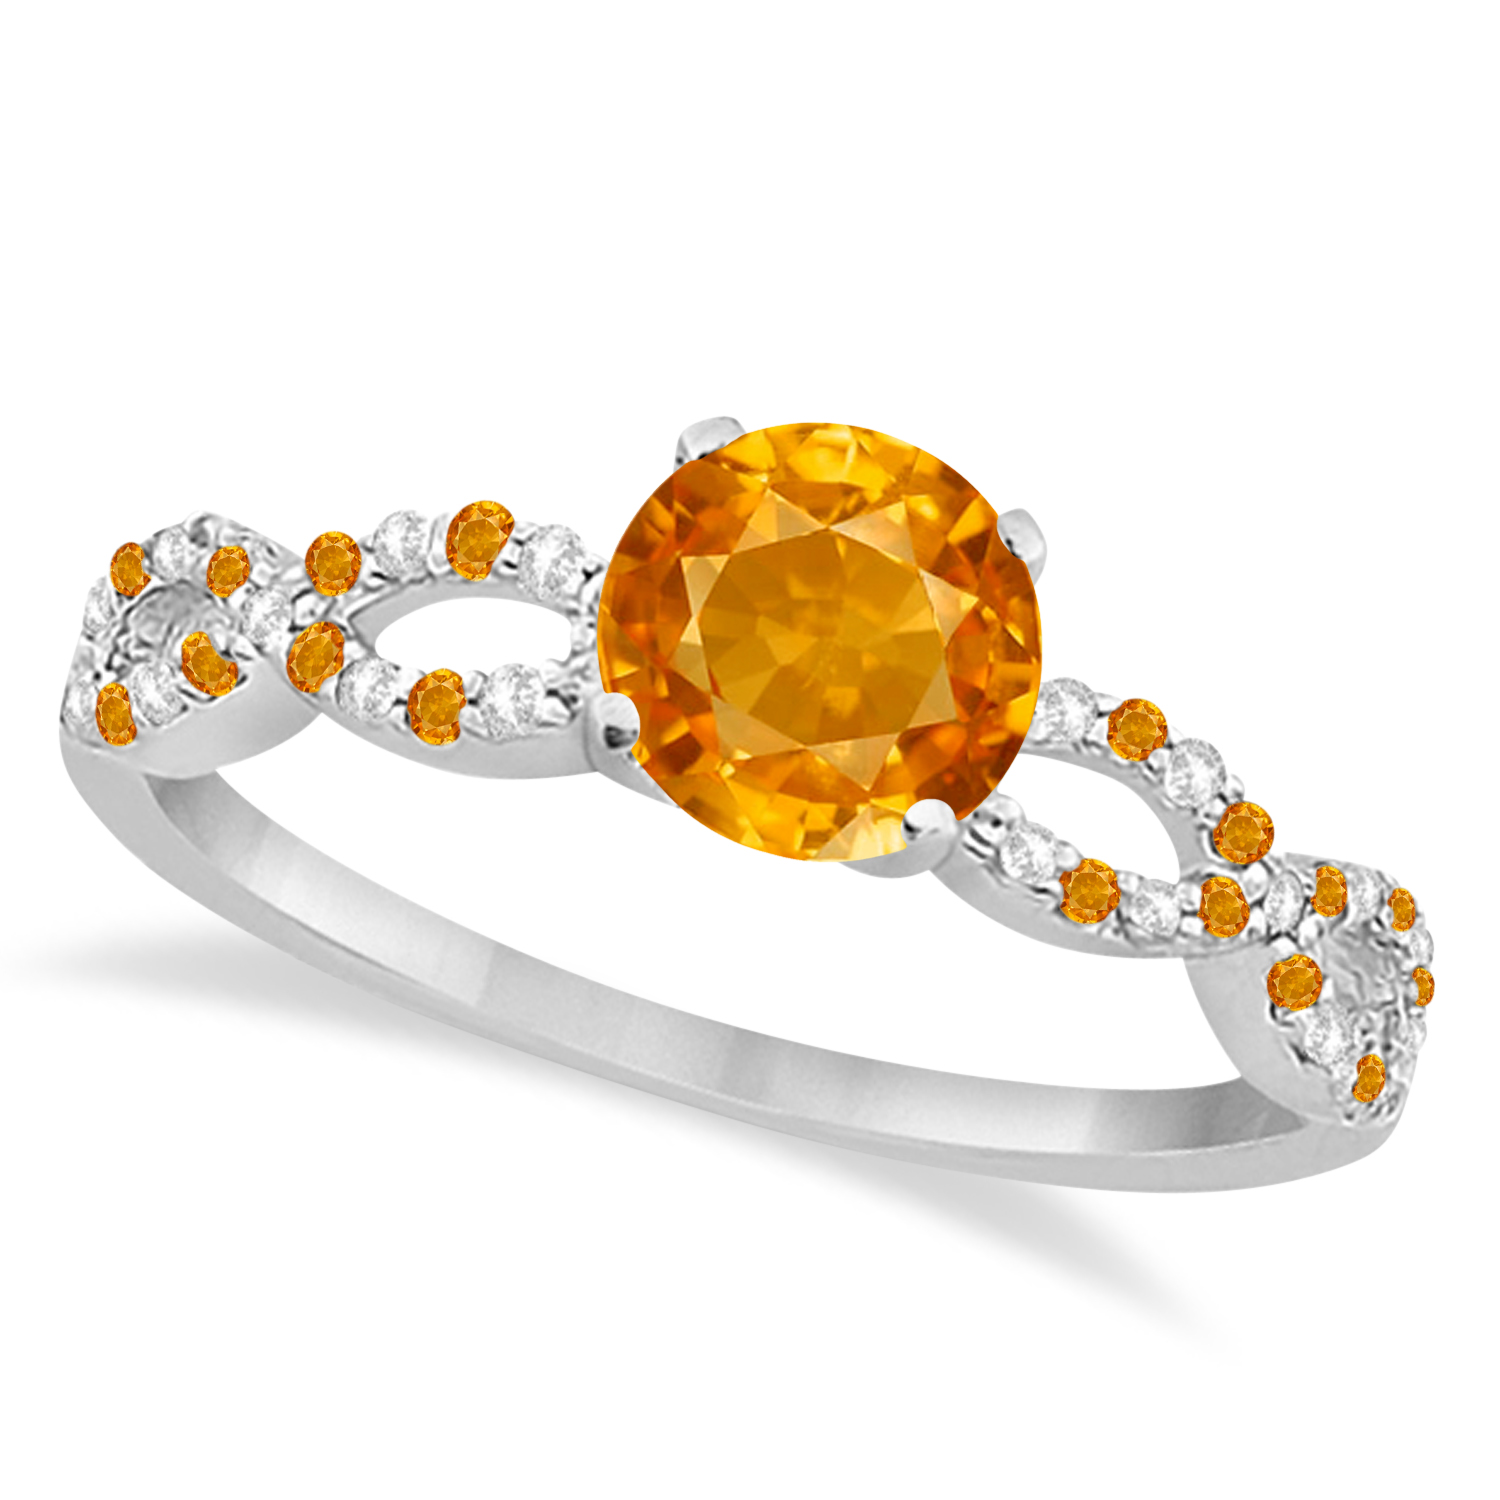 Infinity Style Citrine & Diamond Bridal Set 14k White Gold 1.29ct